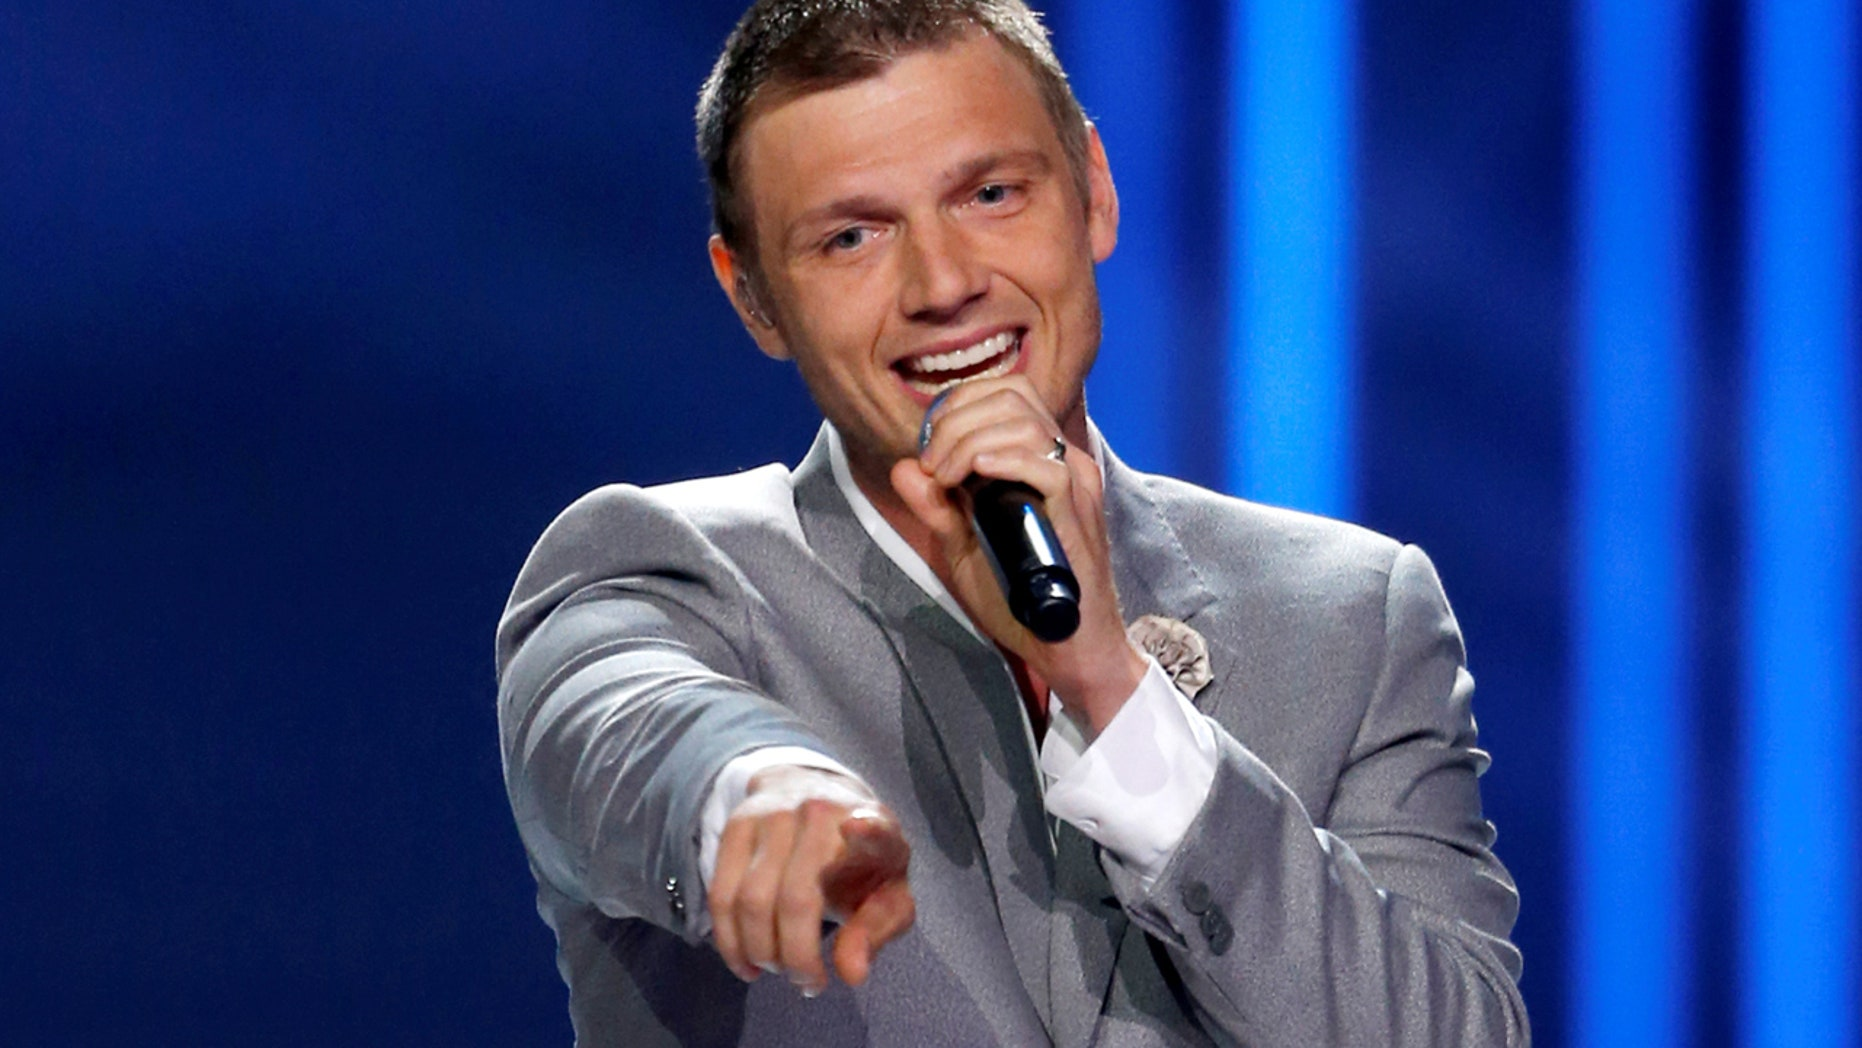 A former singer said Nick Carter from the Backstreet Boys assaulted her.